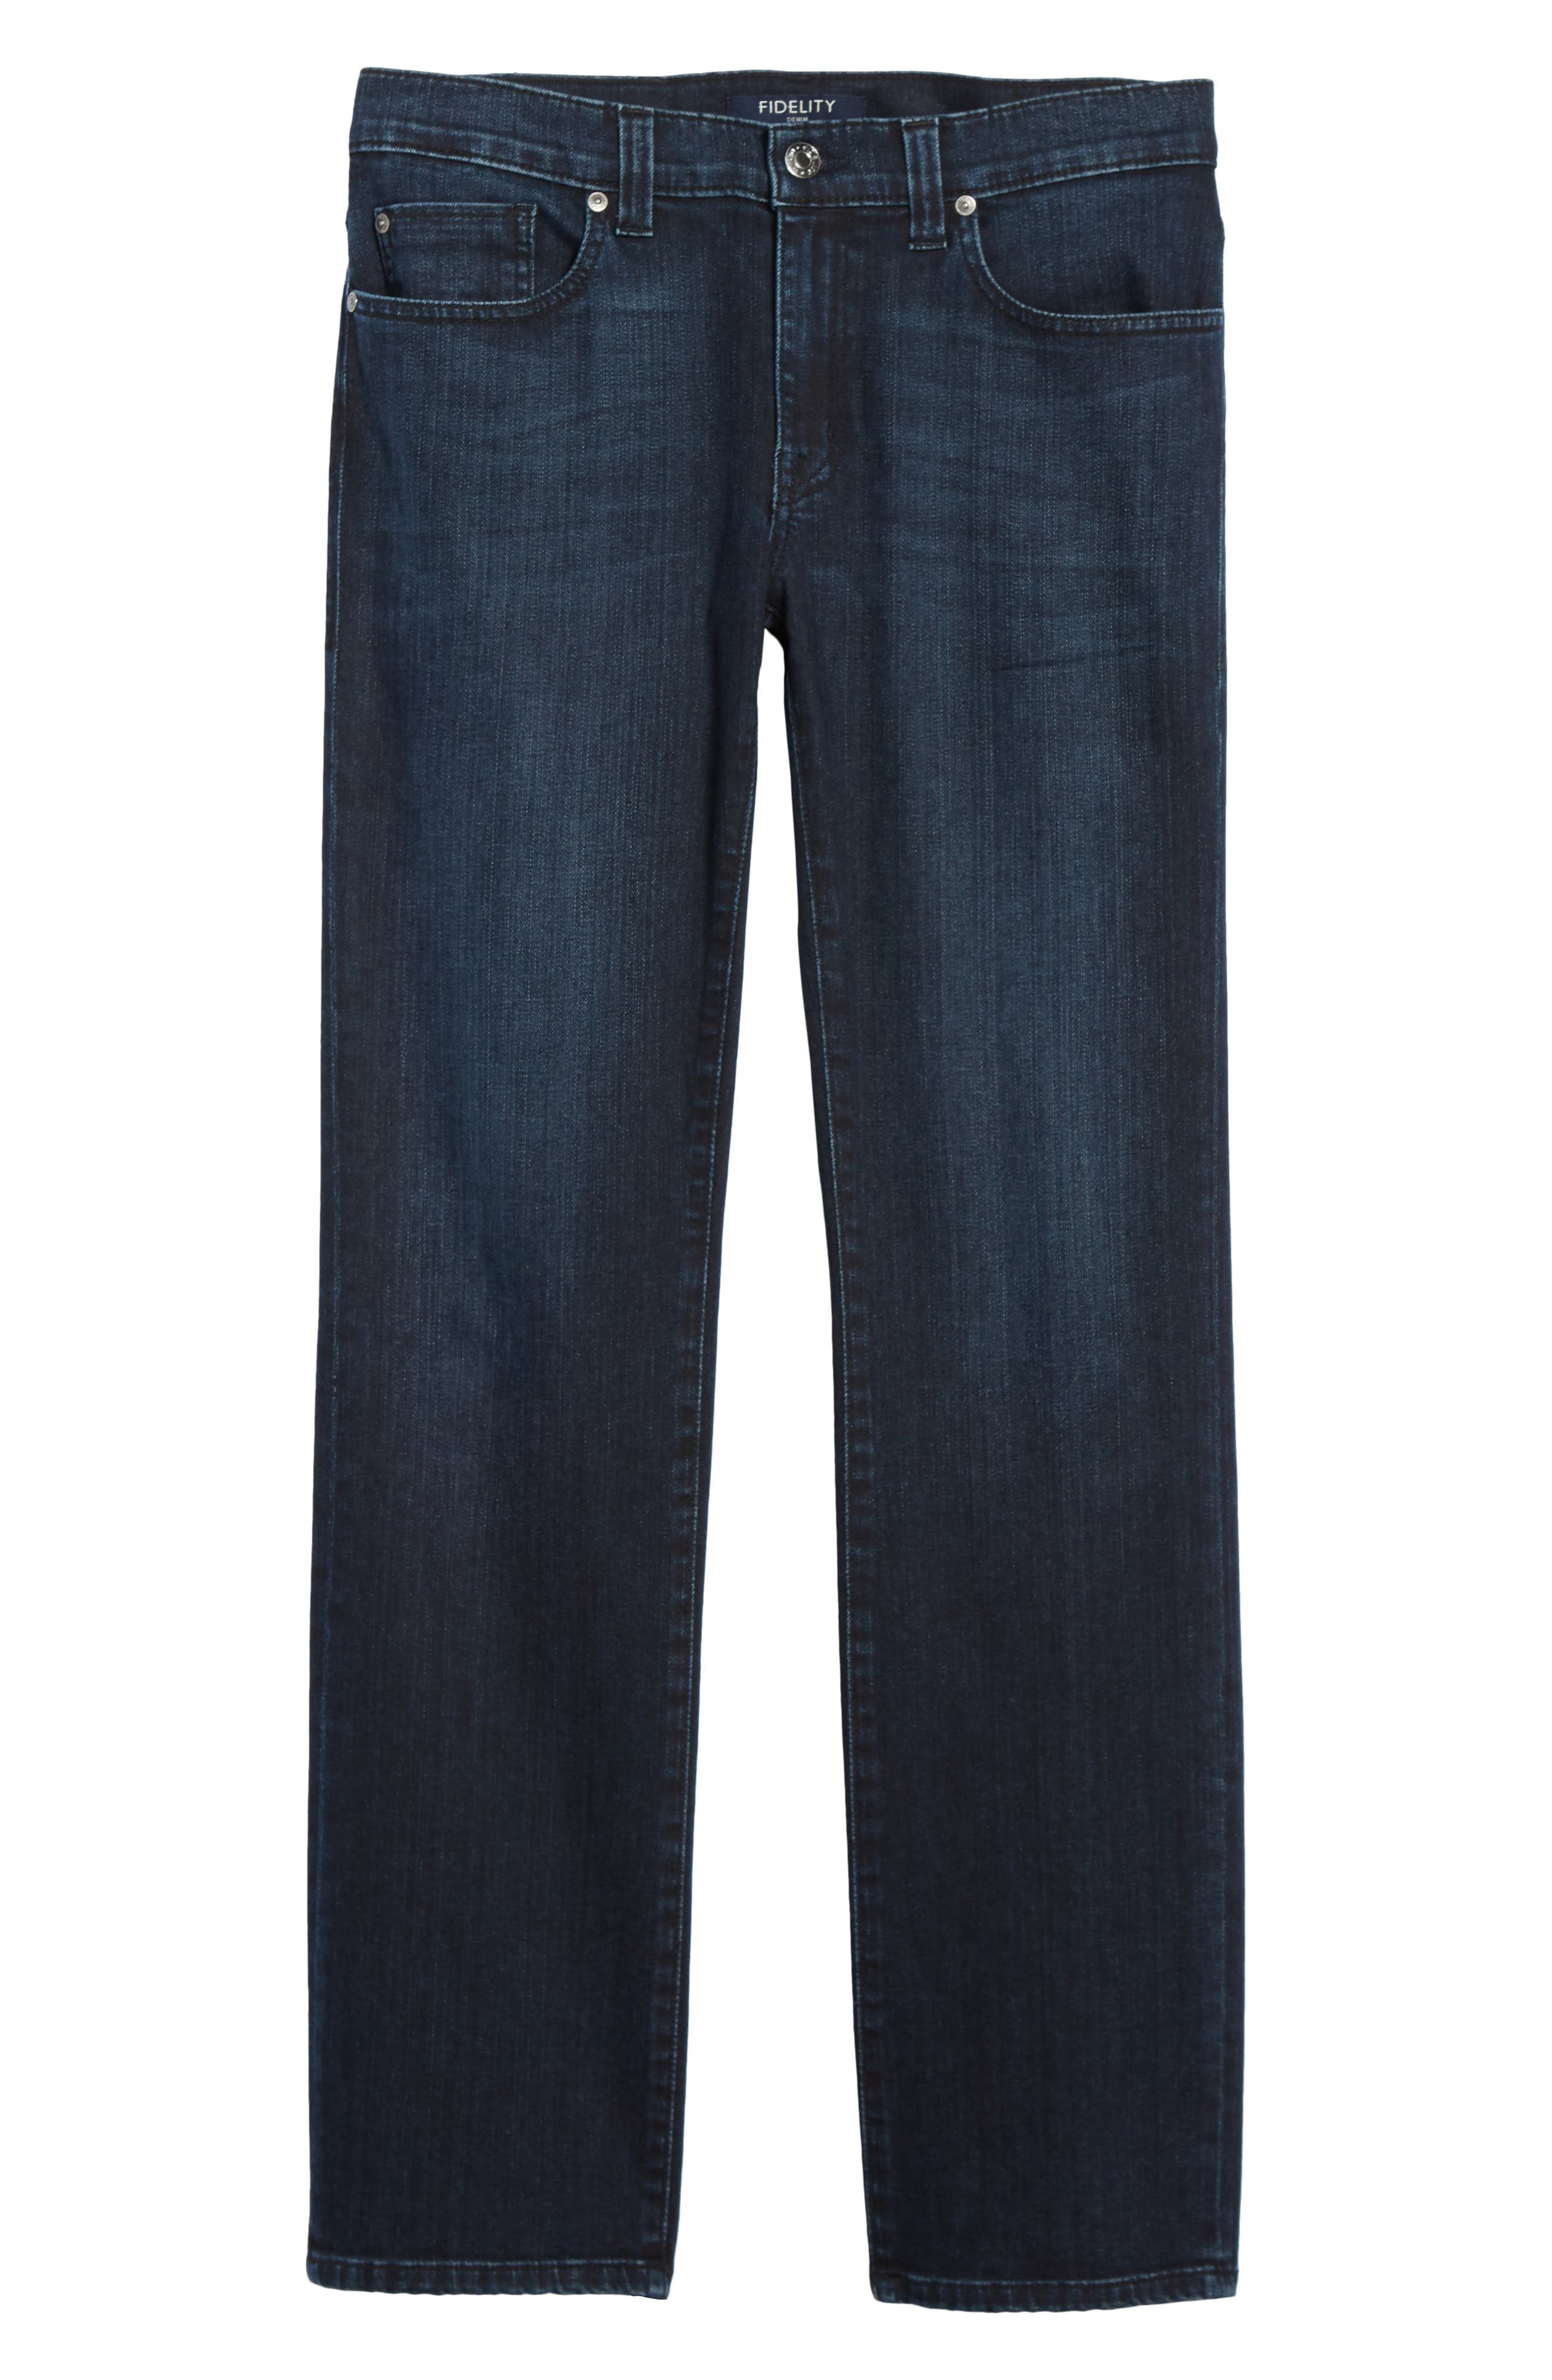 5011 Relaxed Fit Jeans,                             Alternate thumbnail 6, color,                             400